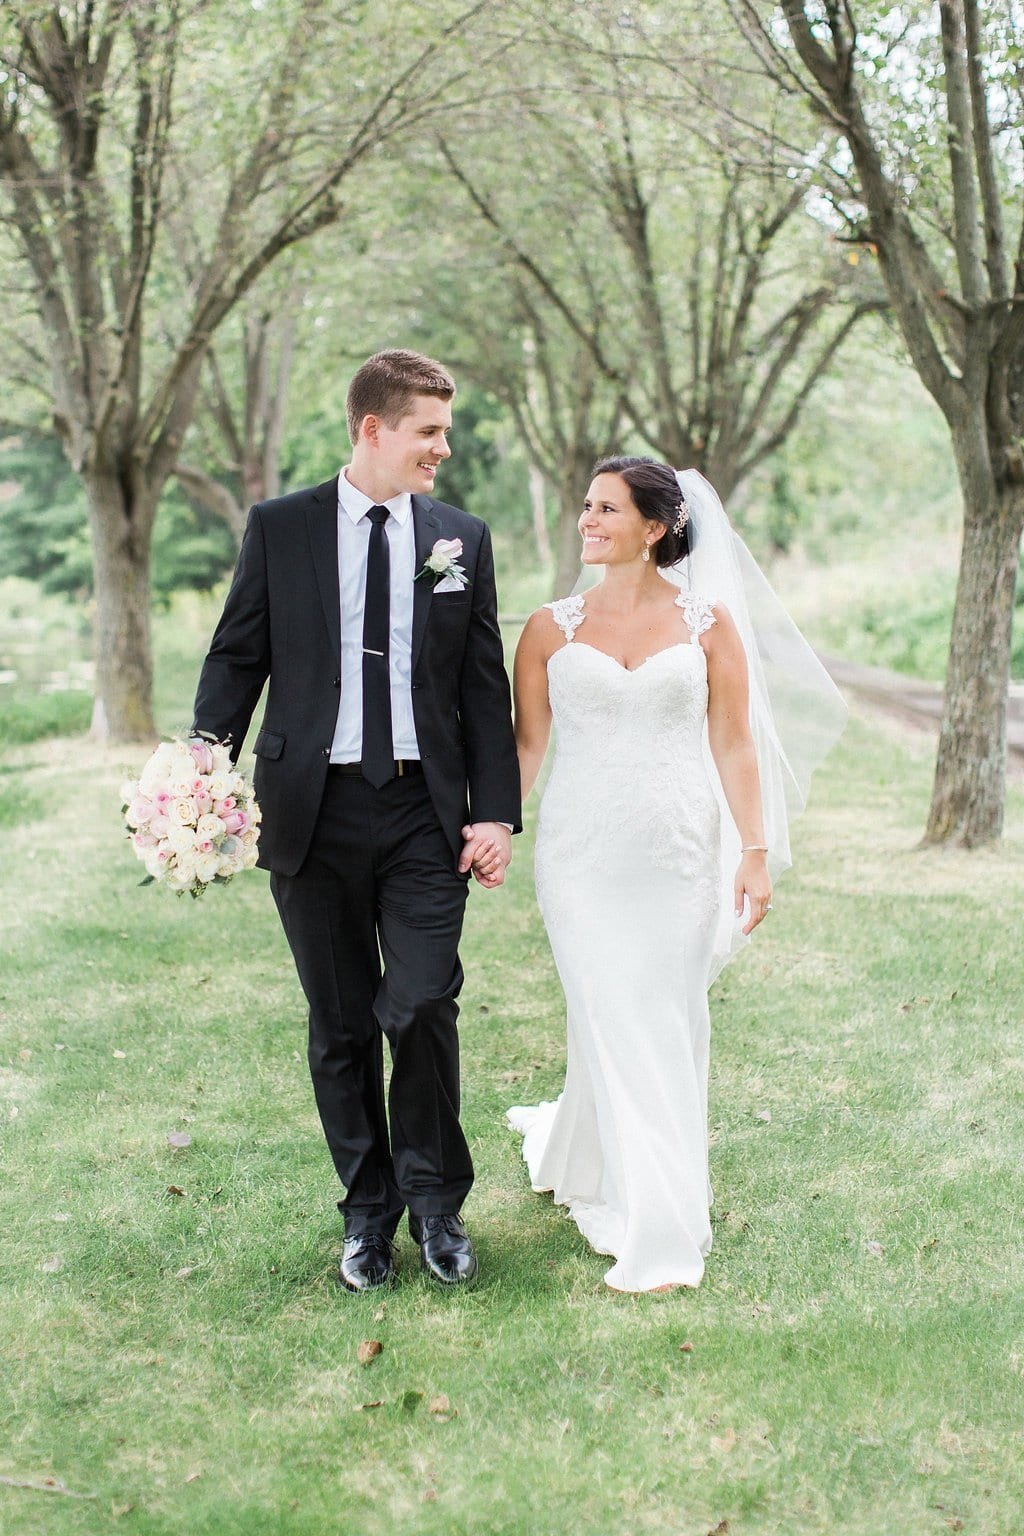 Groom holding bride's bouquet as they walk together holding hands and looking at each other